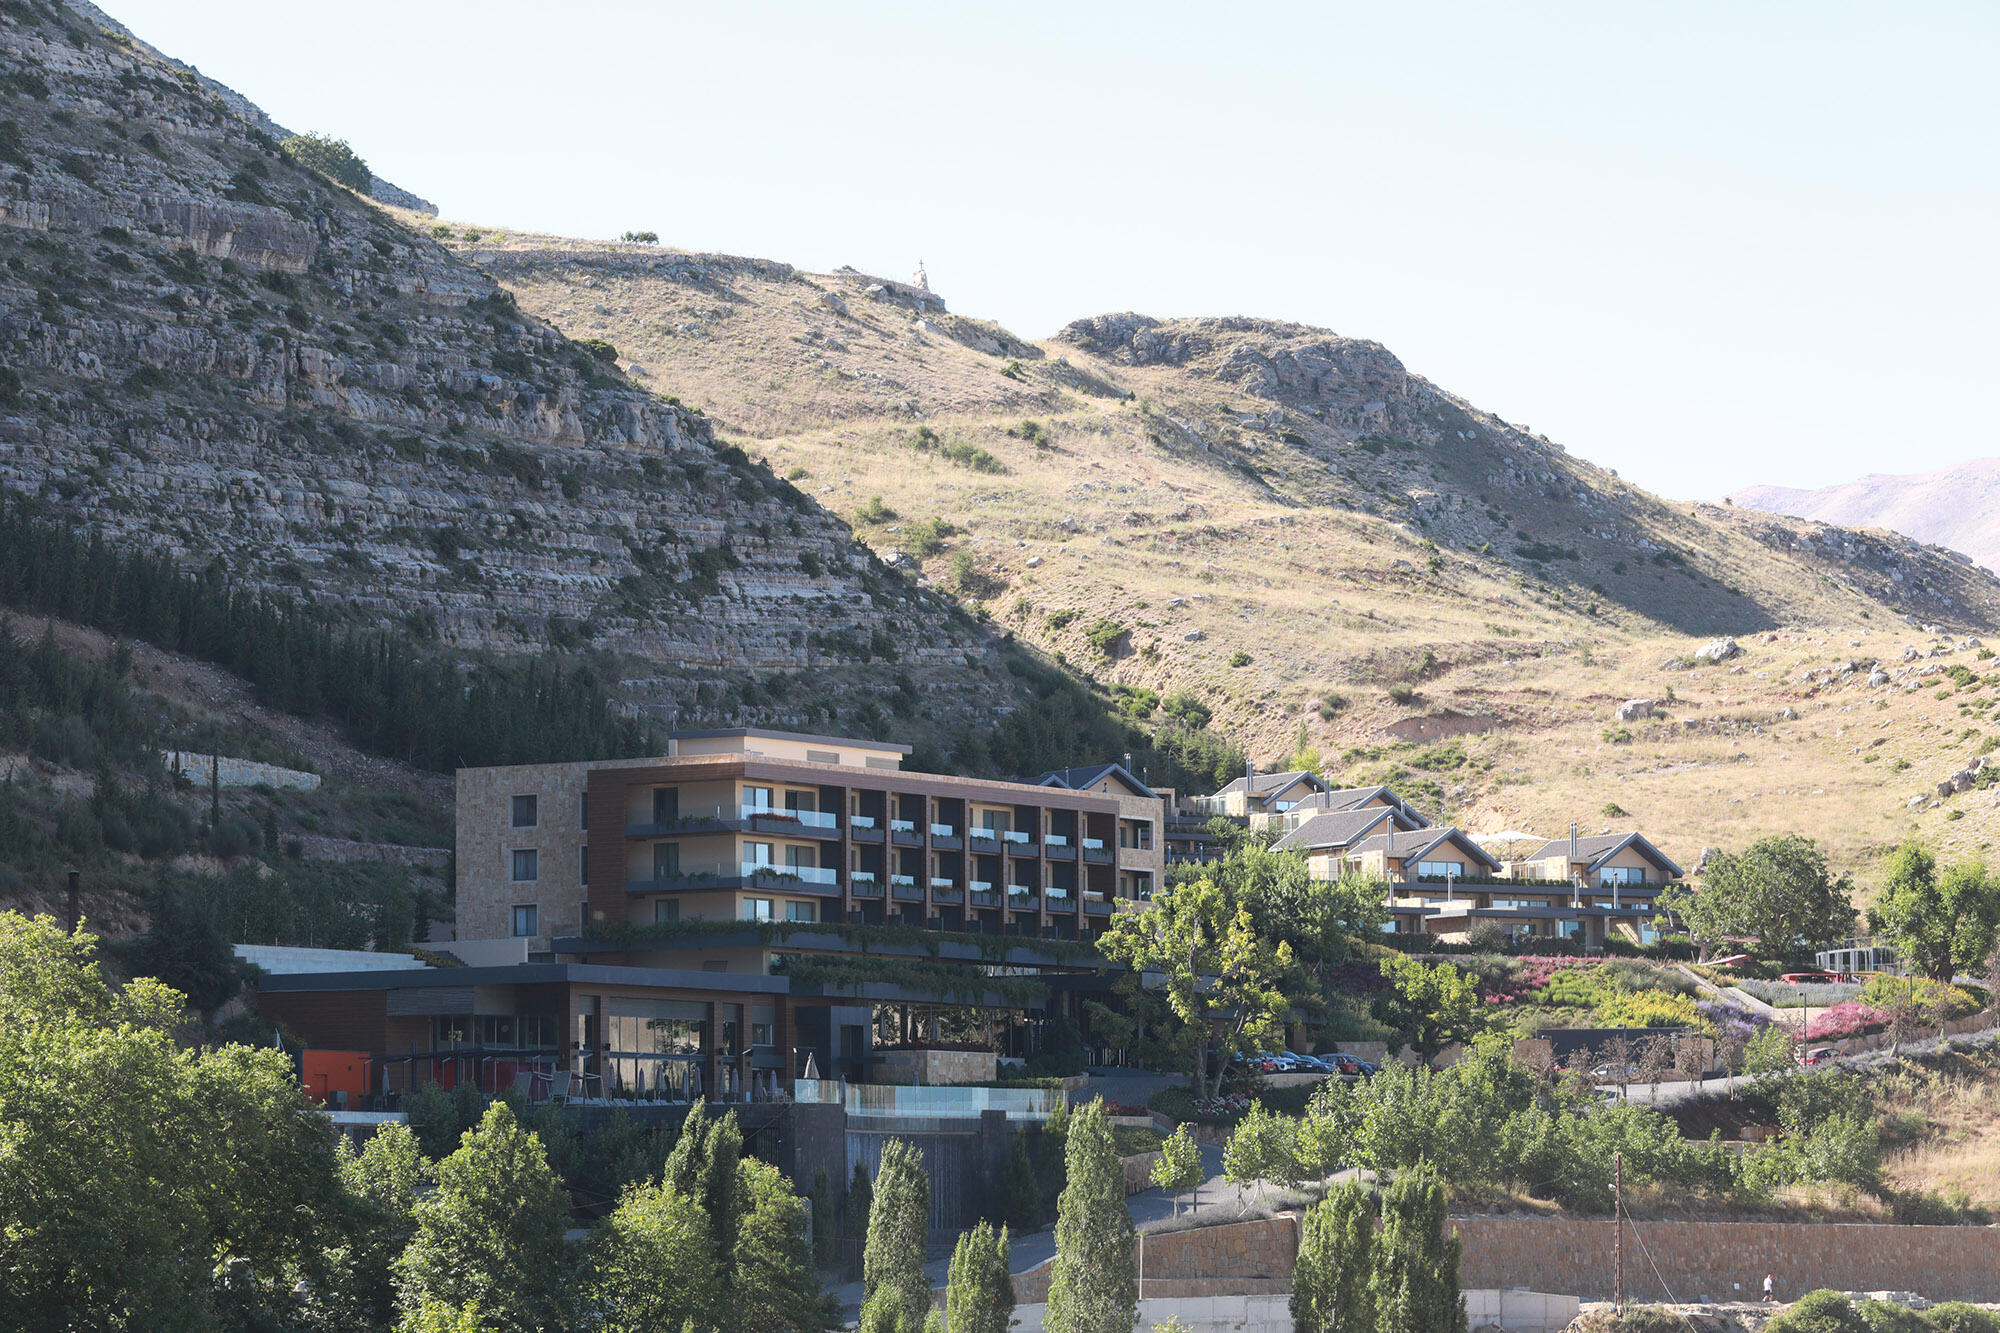 Hotel Surrounded by Mountain